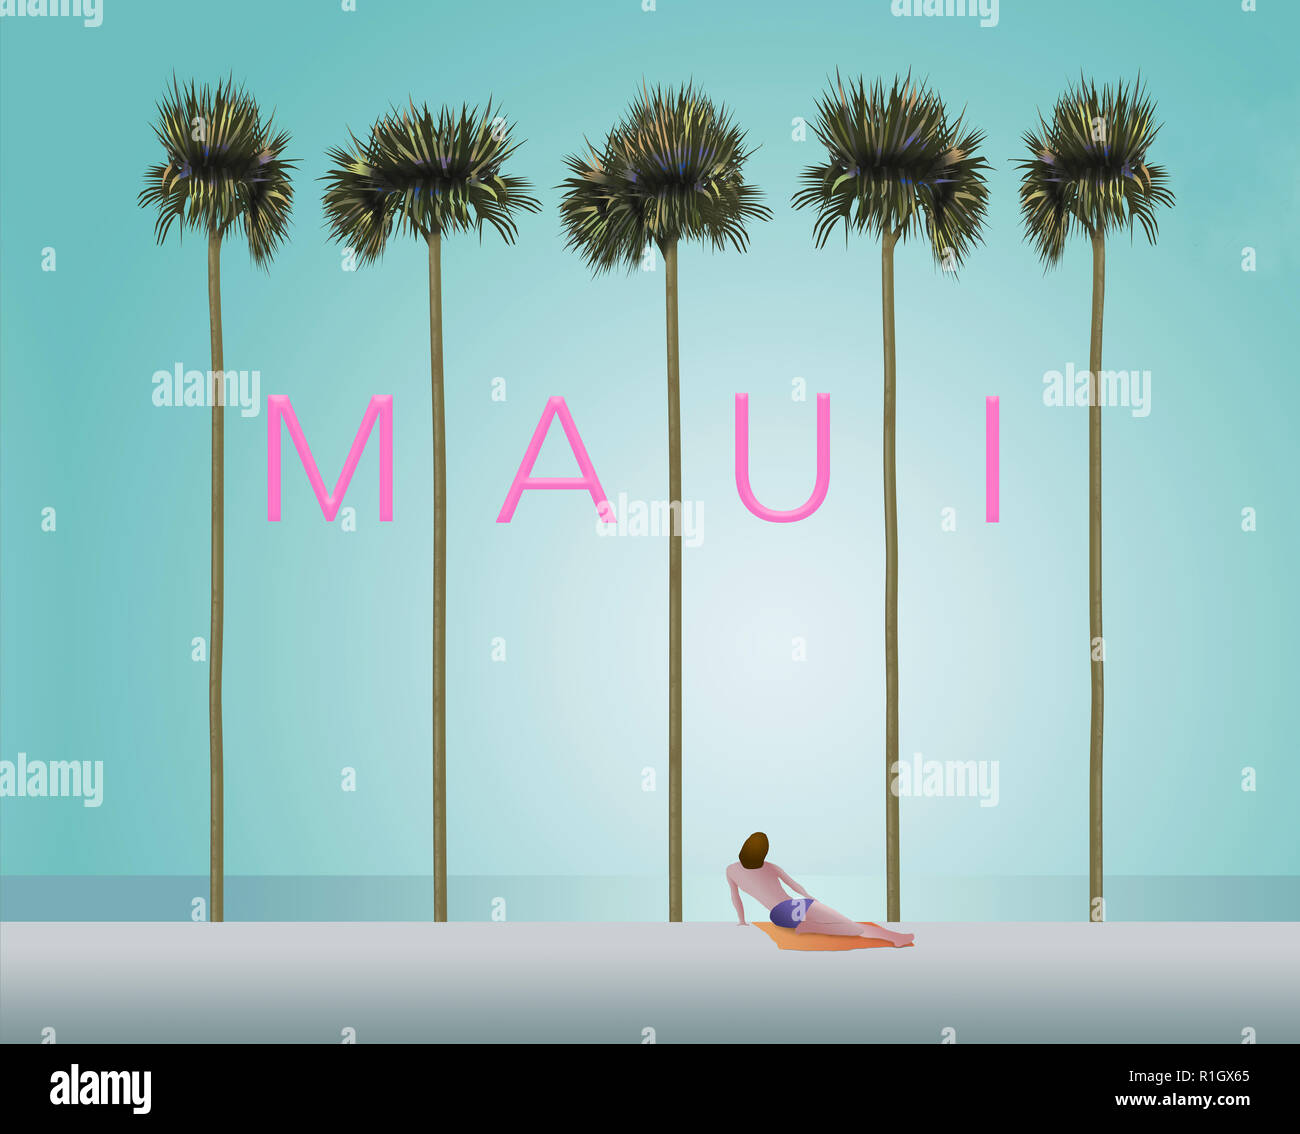 Tall palm trees and a sunbather on a white sand beach set the scene for the vacation destination Maui. This is an illustration. - Stock Image